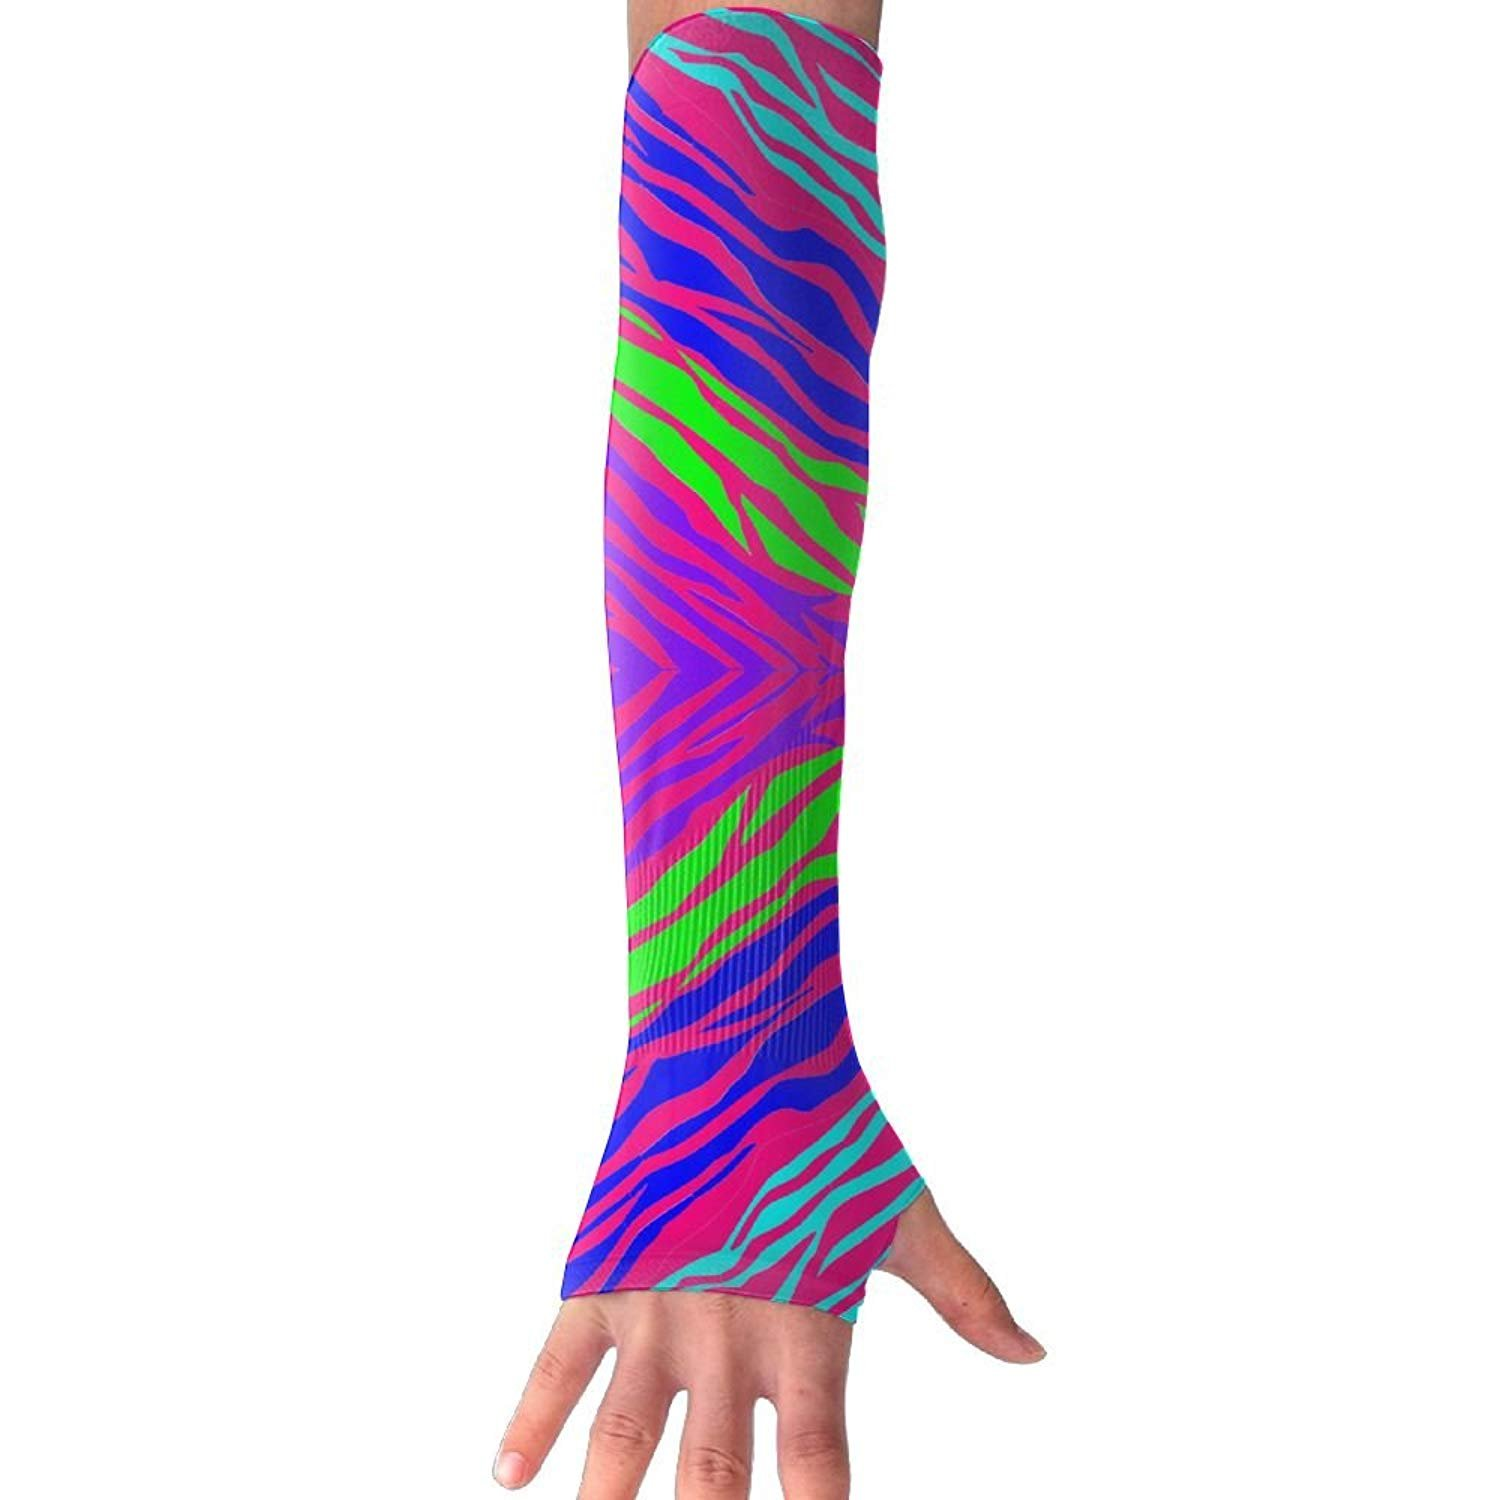 Unisex Color Animal Pattern Sense Ice Outdoor Travel Arm Warmer Long Sleeves Glove